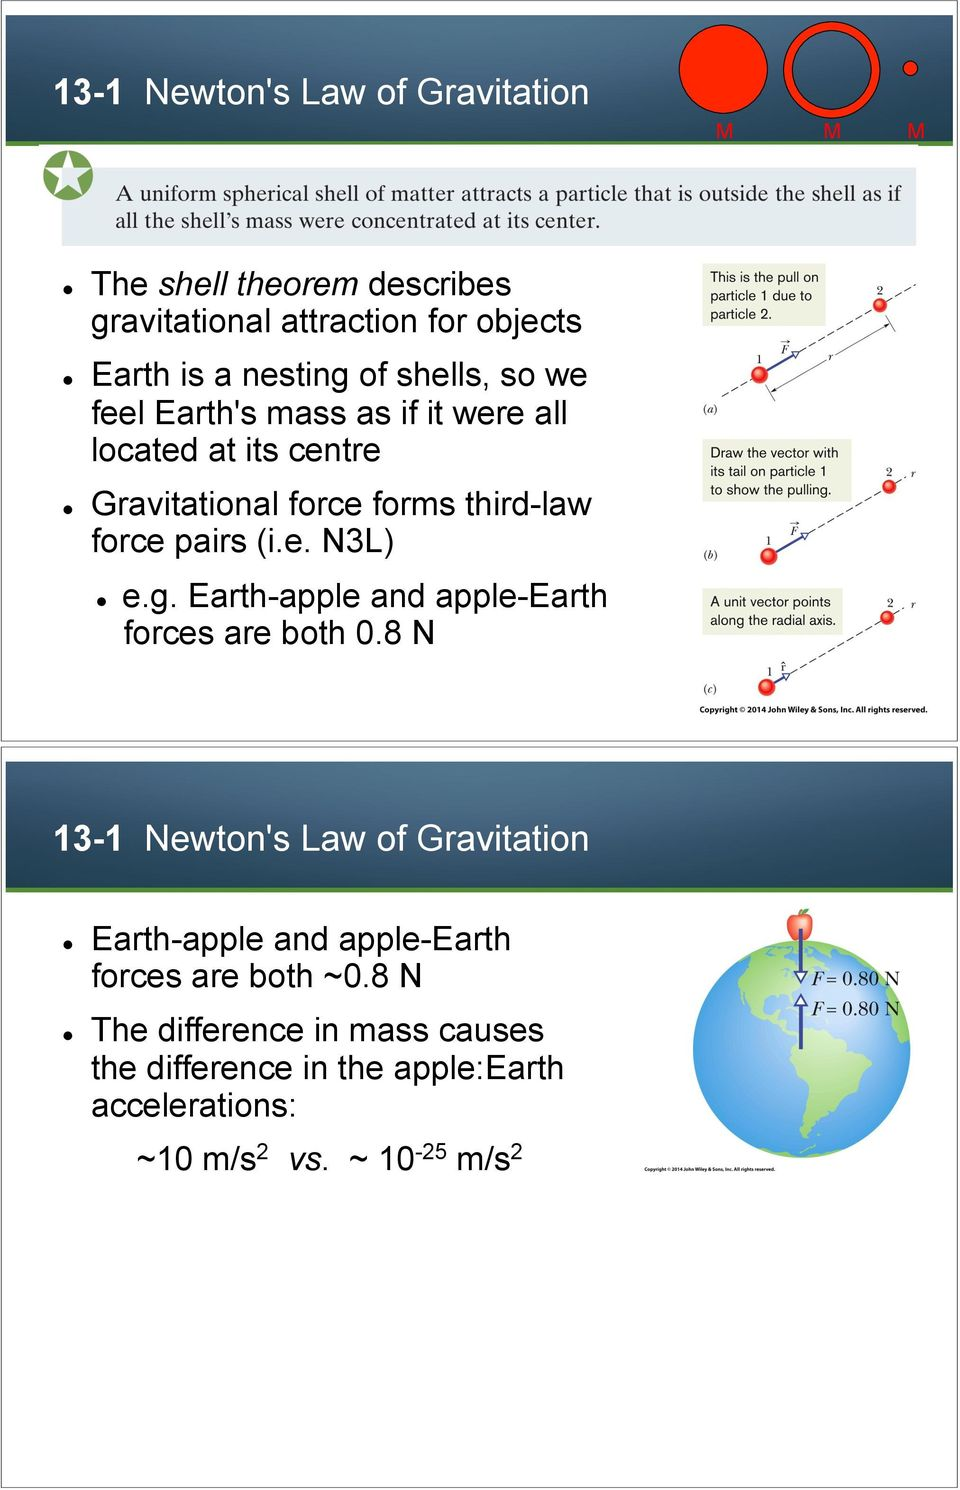 Gravitational force forms third-law force pairs (i.e. N3L)! e.g. Earth-apple and apple-earth forces are both 0.